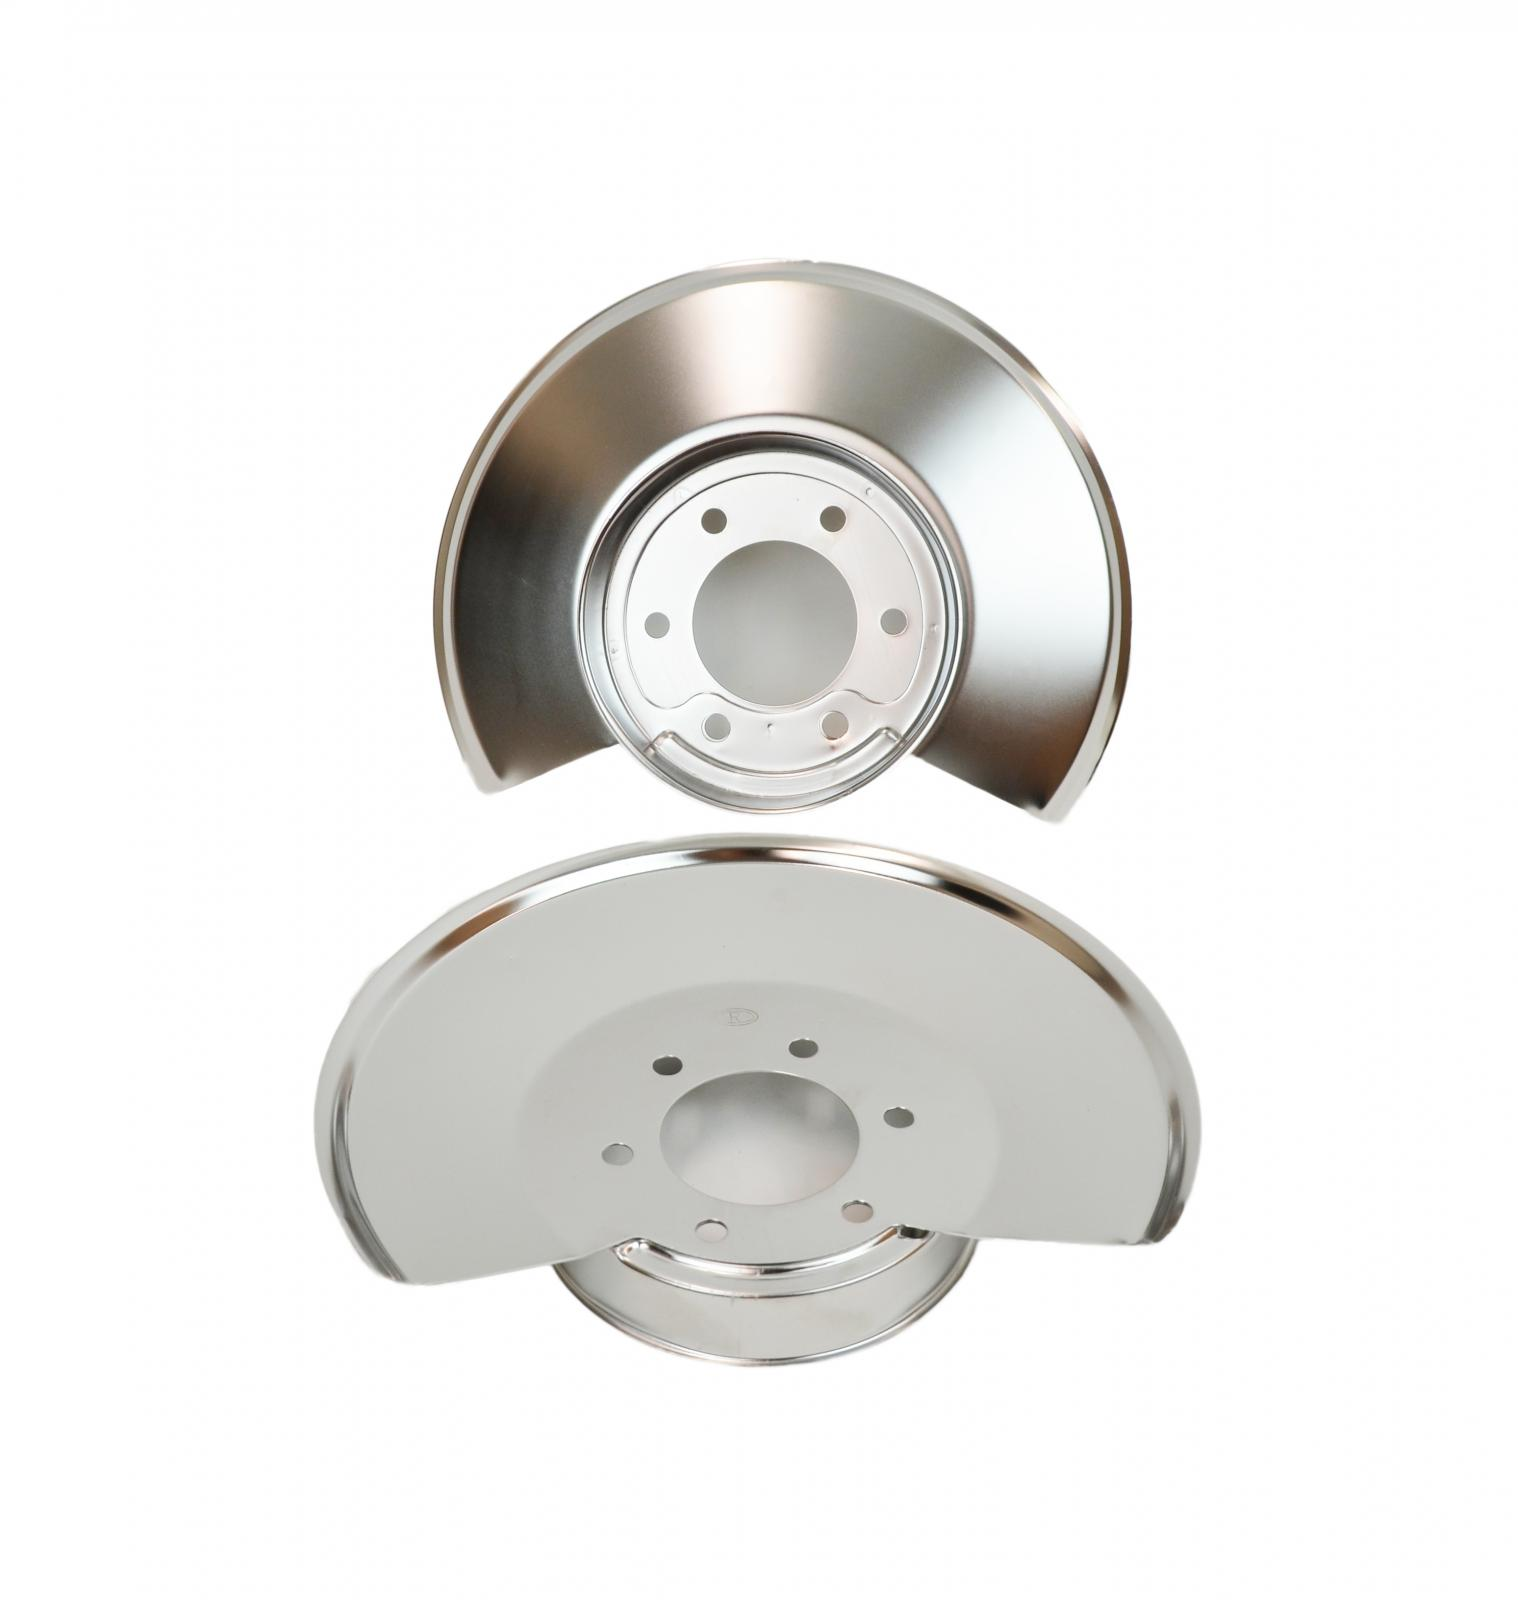 Kentrol 30502 Polished Stainless Steel Disc Brake Dust Covers for 78-86 Jeep CJ7